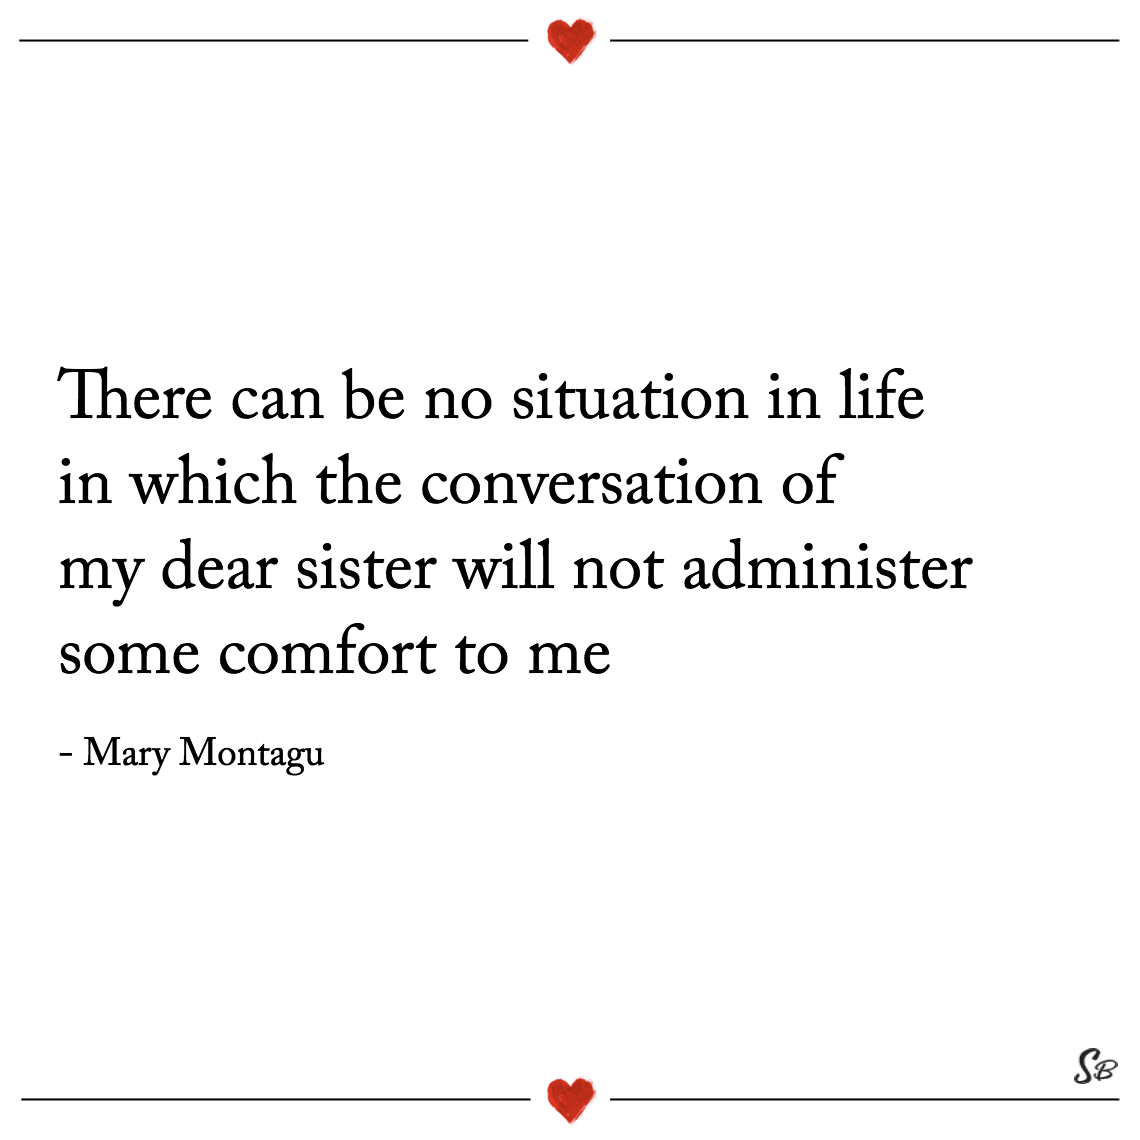 There can be no situation in life in which the conversation of my dear sister will not administer some comfort to me mary montague